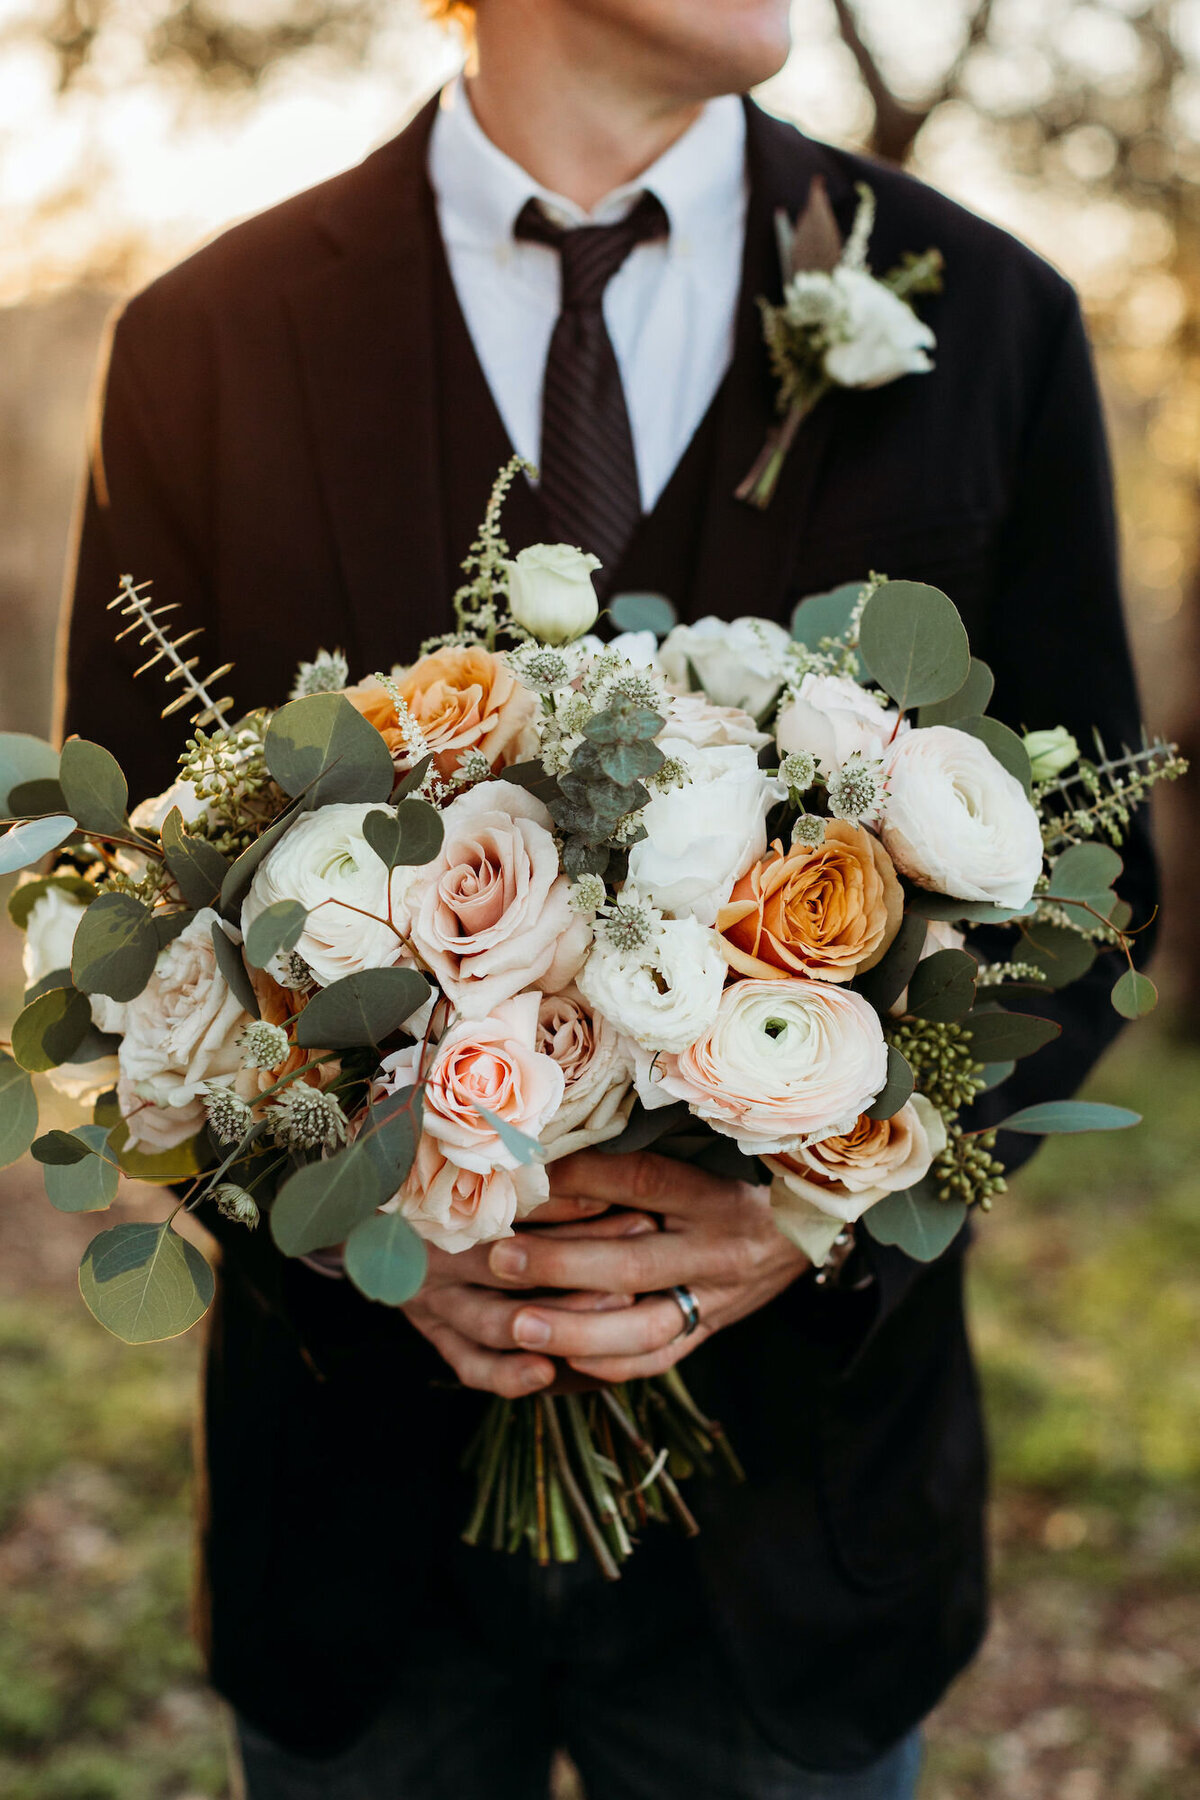 Groom holding white and orange wedding bouquet